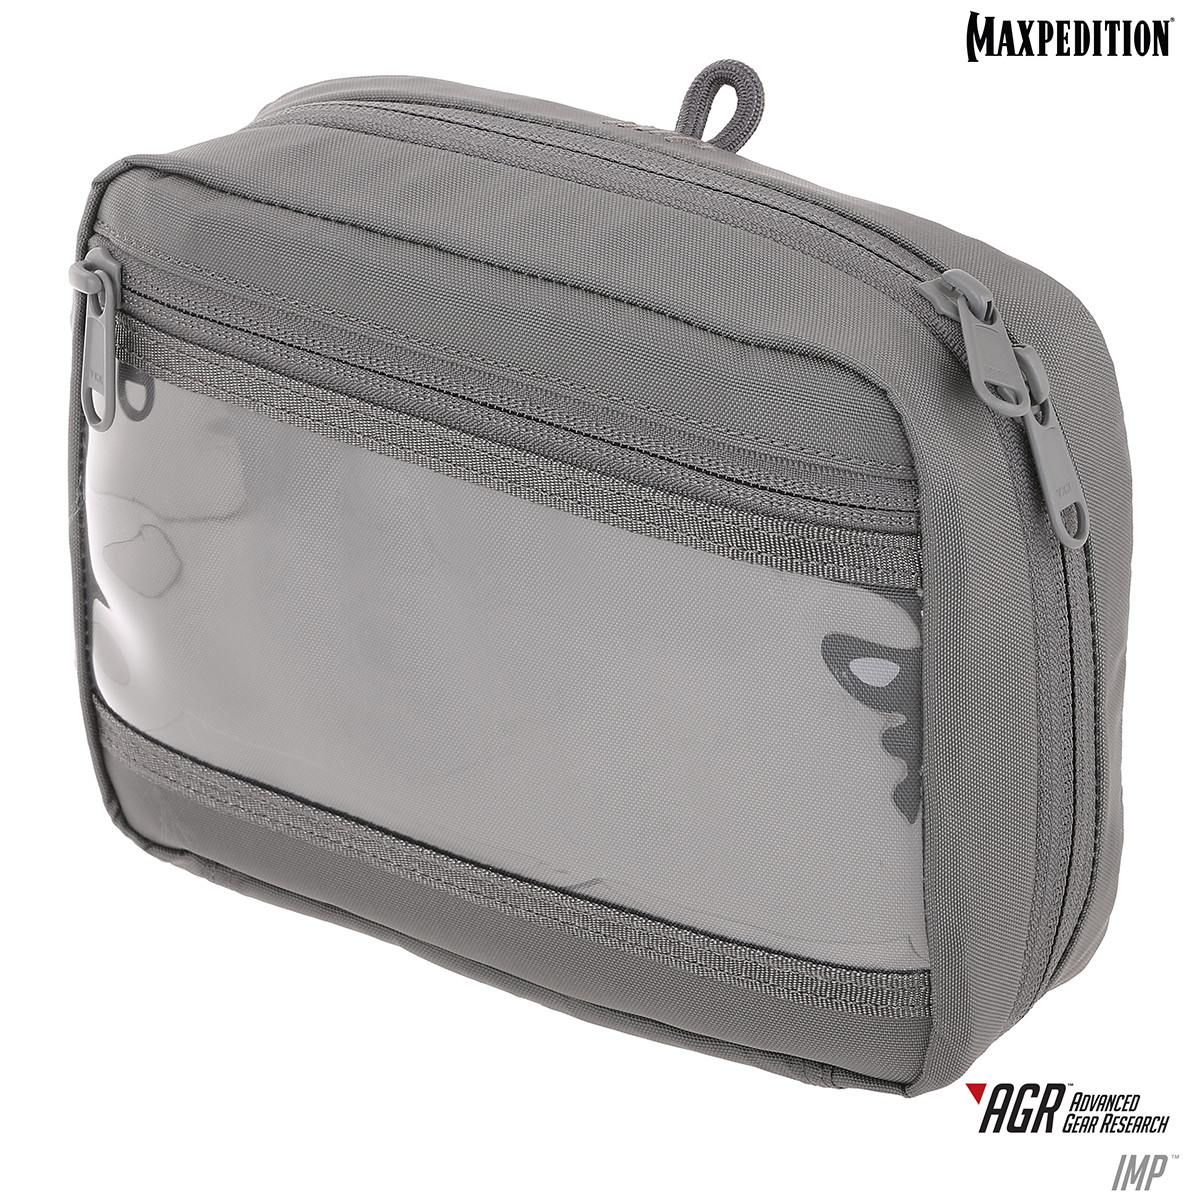 Maxpedition FRP First Response Pouch Grey